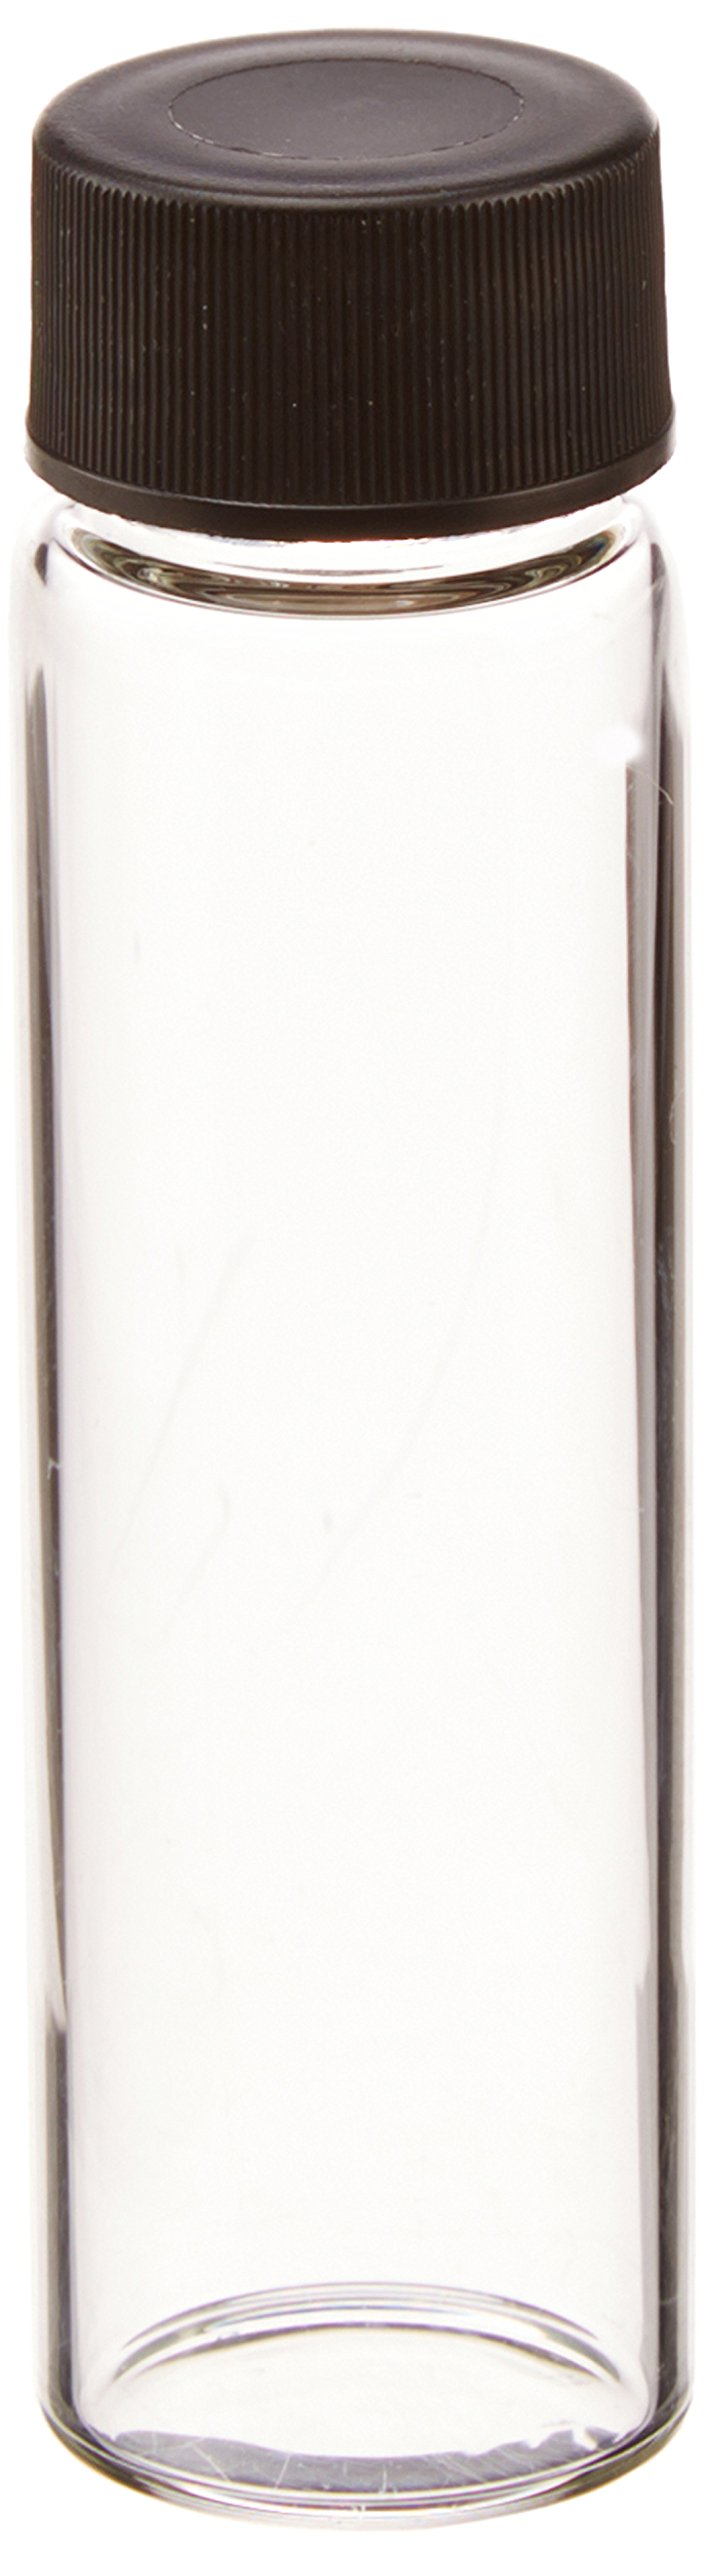 JG Finneran 812020-1965 Borosilicate Glass Dram Sample Vial with Solid Top Cap and PTFE/F217 Septa, Clear, 3 Dram Capacity, 19mm Diameter x 65mm Height (Case of 100)